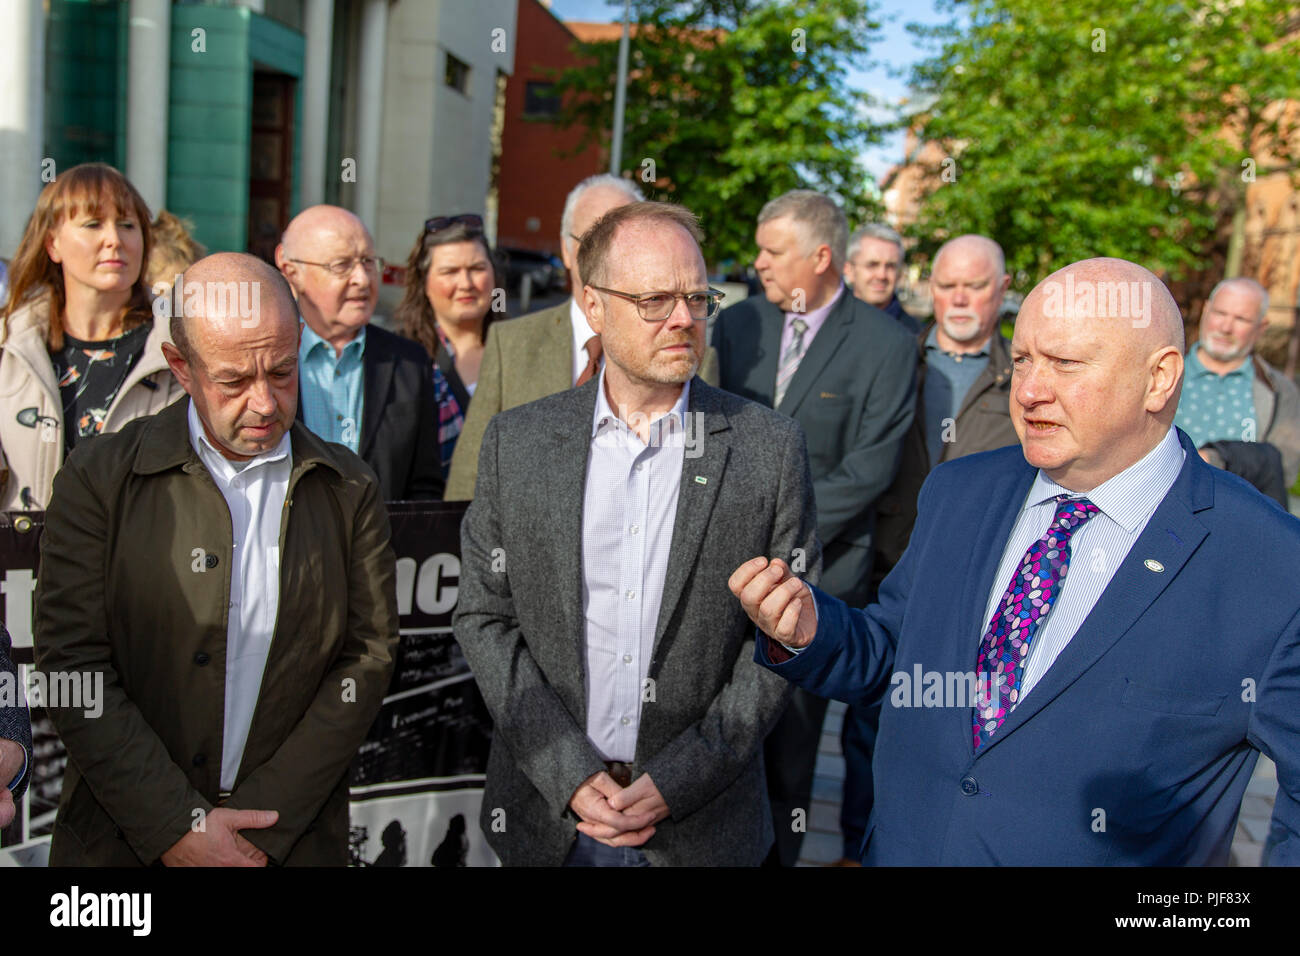 Belfast, UK. 7th September 2018. Barry McCaffrey and Trevor Birney  withy NUJs Seamus Dooley and Gerry Carson, arrive at High Court in Belfast High Court who Fine Point Films brought emergency proceedings to Belfast High Court today, challenging the legality of the search warrant used by police in their search at its Belfast offices last week Credit: Bonzo/Alamy Live News - Stock Image